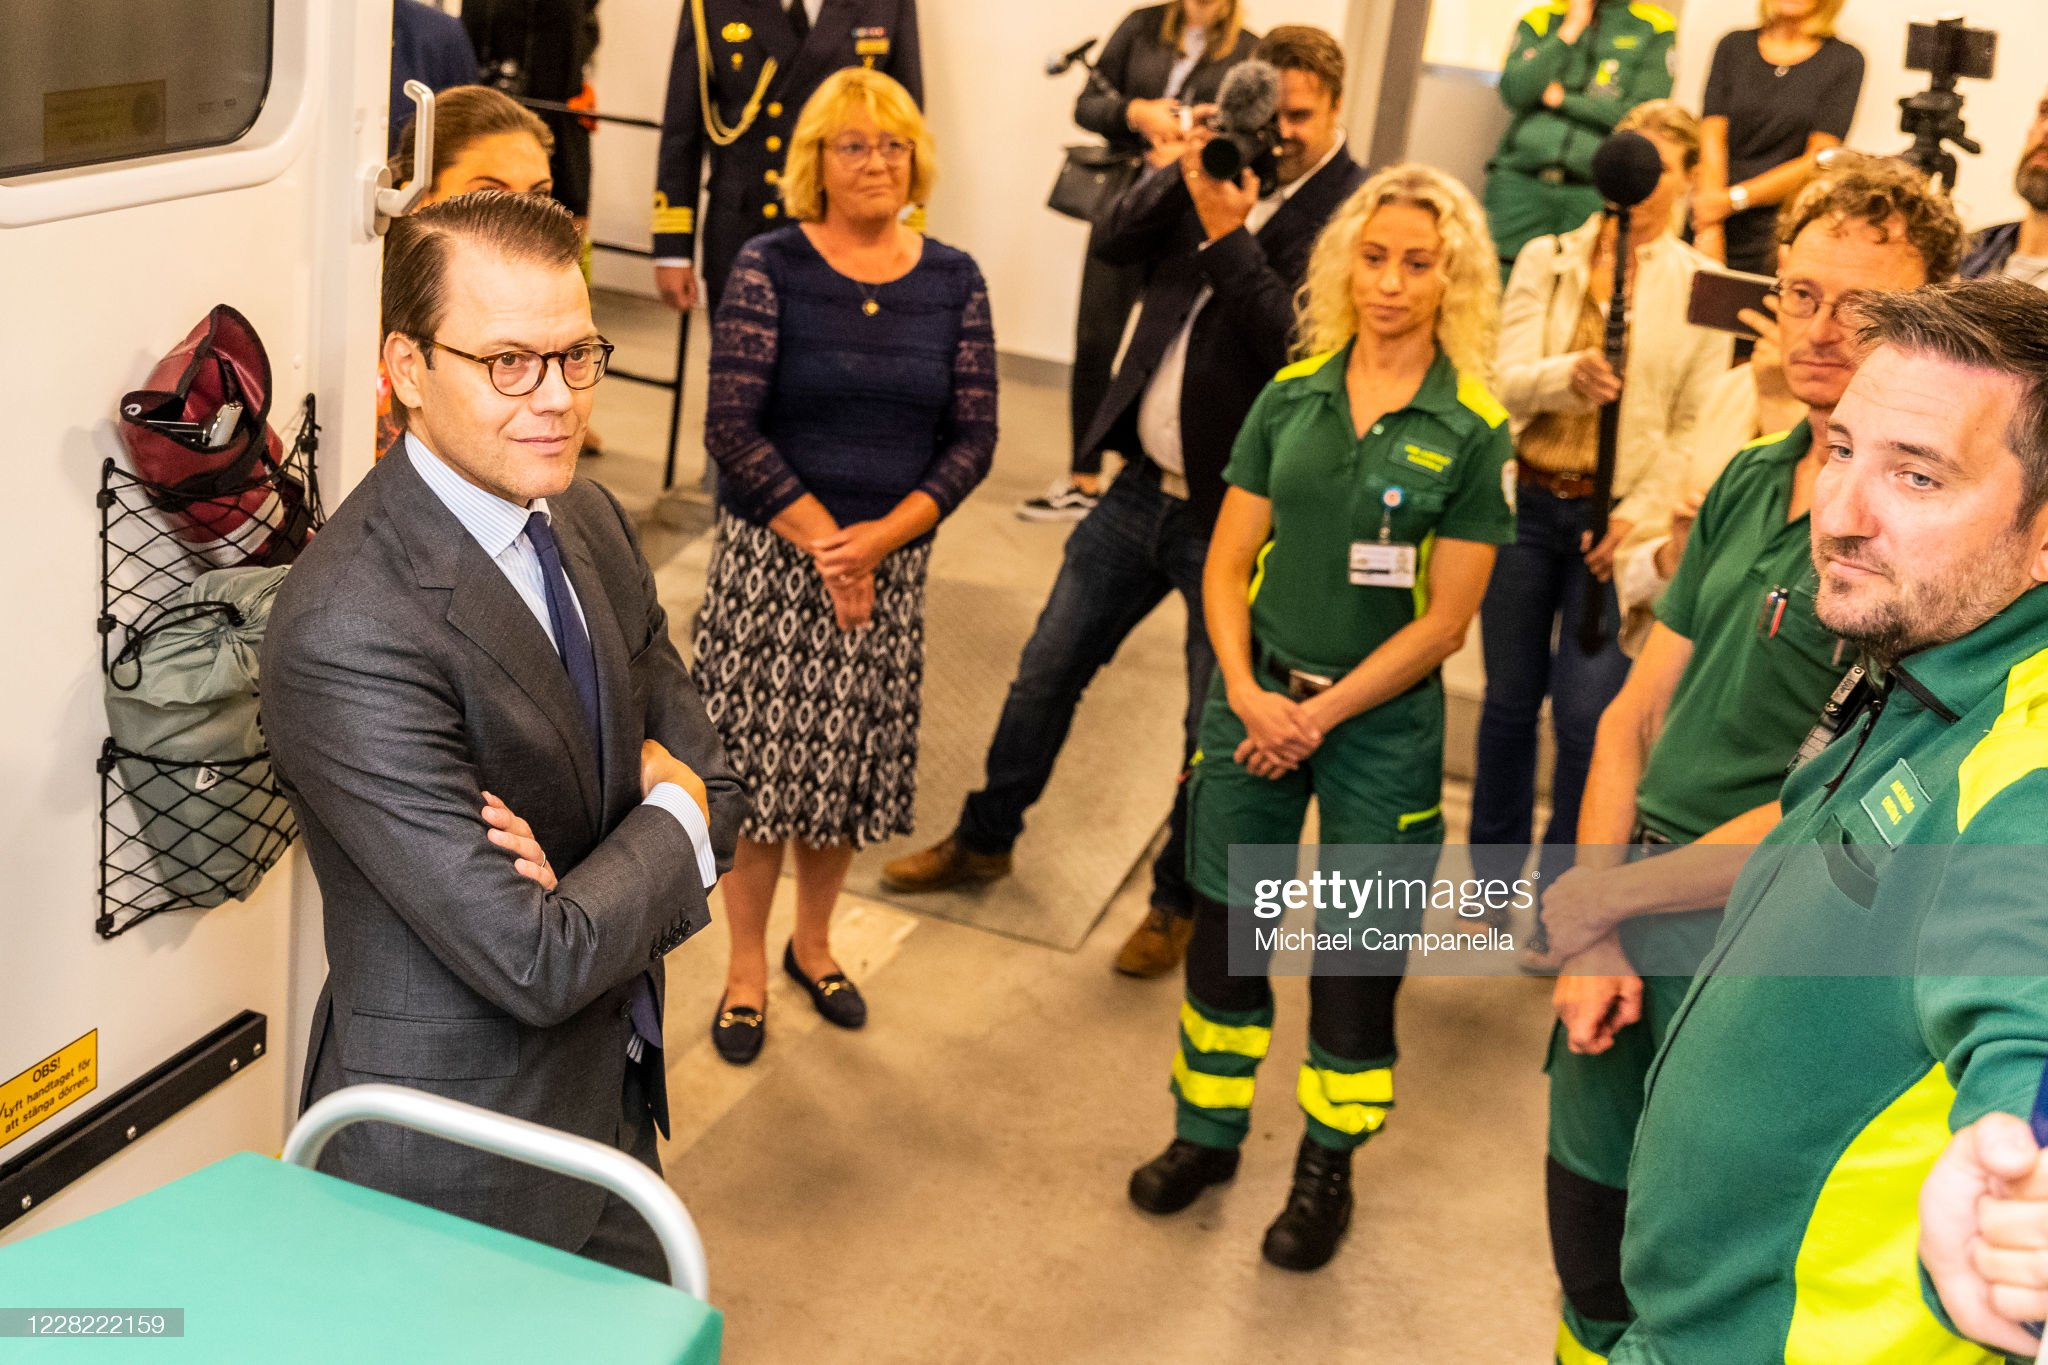 prince-daniel-of-sweden-visits-an-ambulance-station-in-the-stockholm-picture-id1228222159